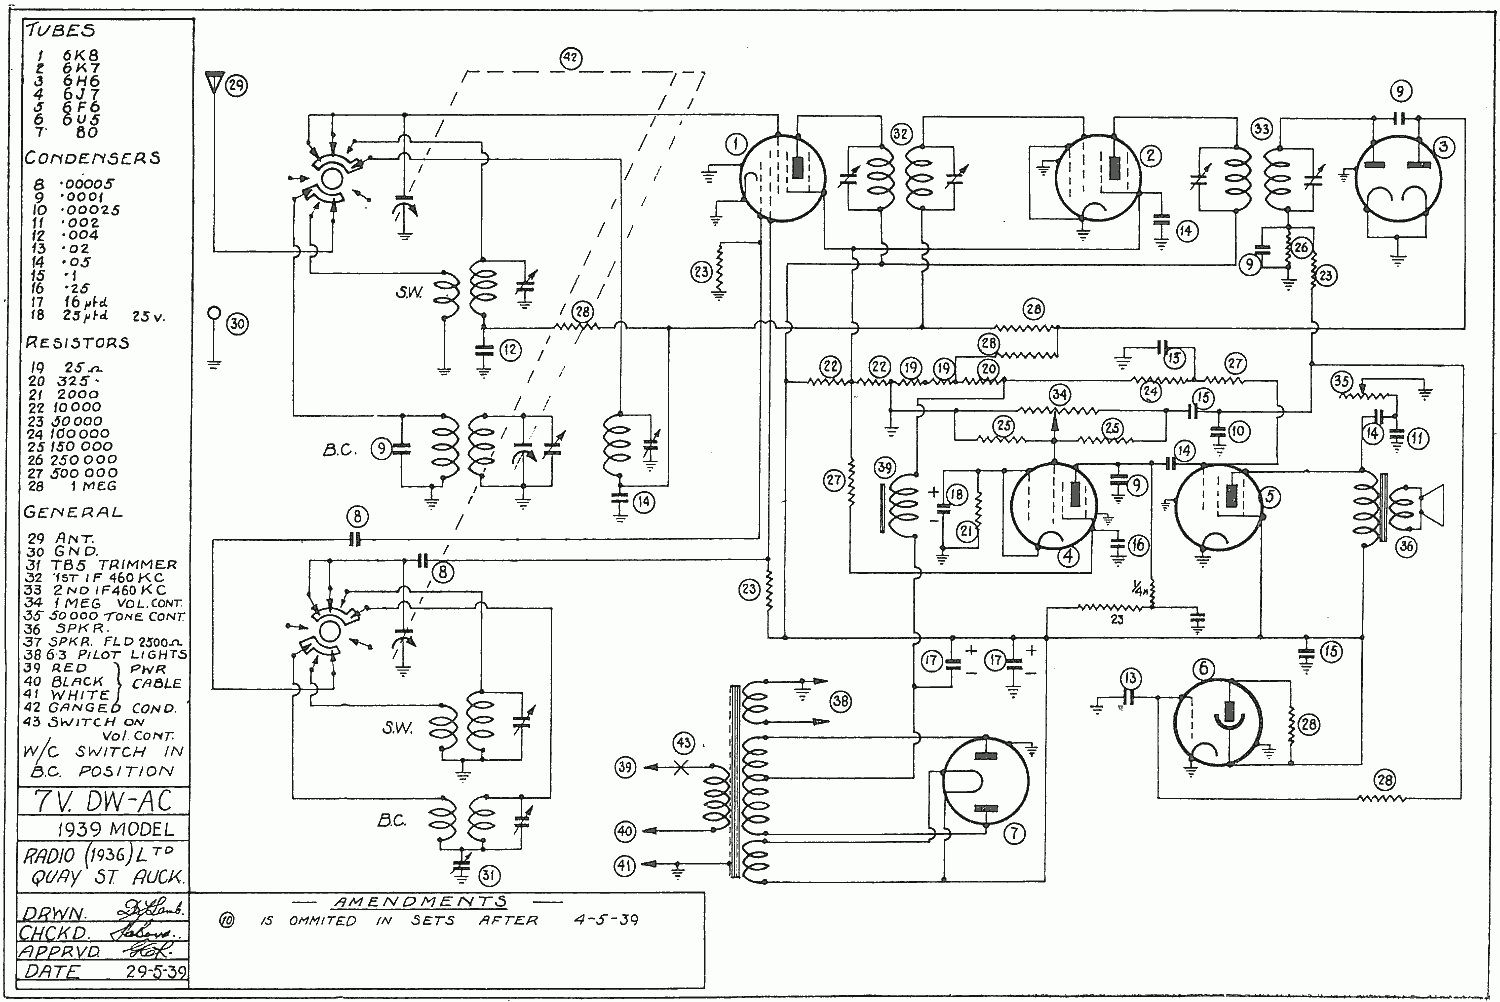 1939 Ultimate-Rolls-Skyscraper-Courier-Golden_Knight CPU CPR CPS CPC Schematic